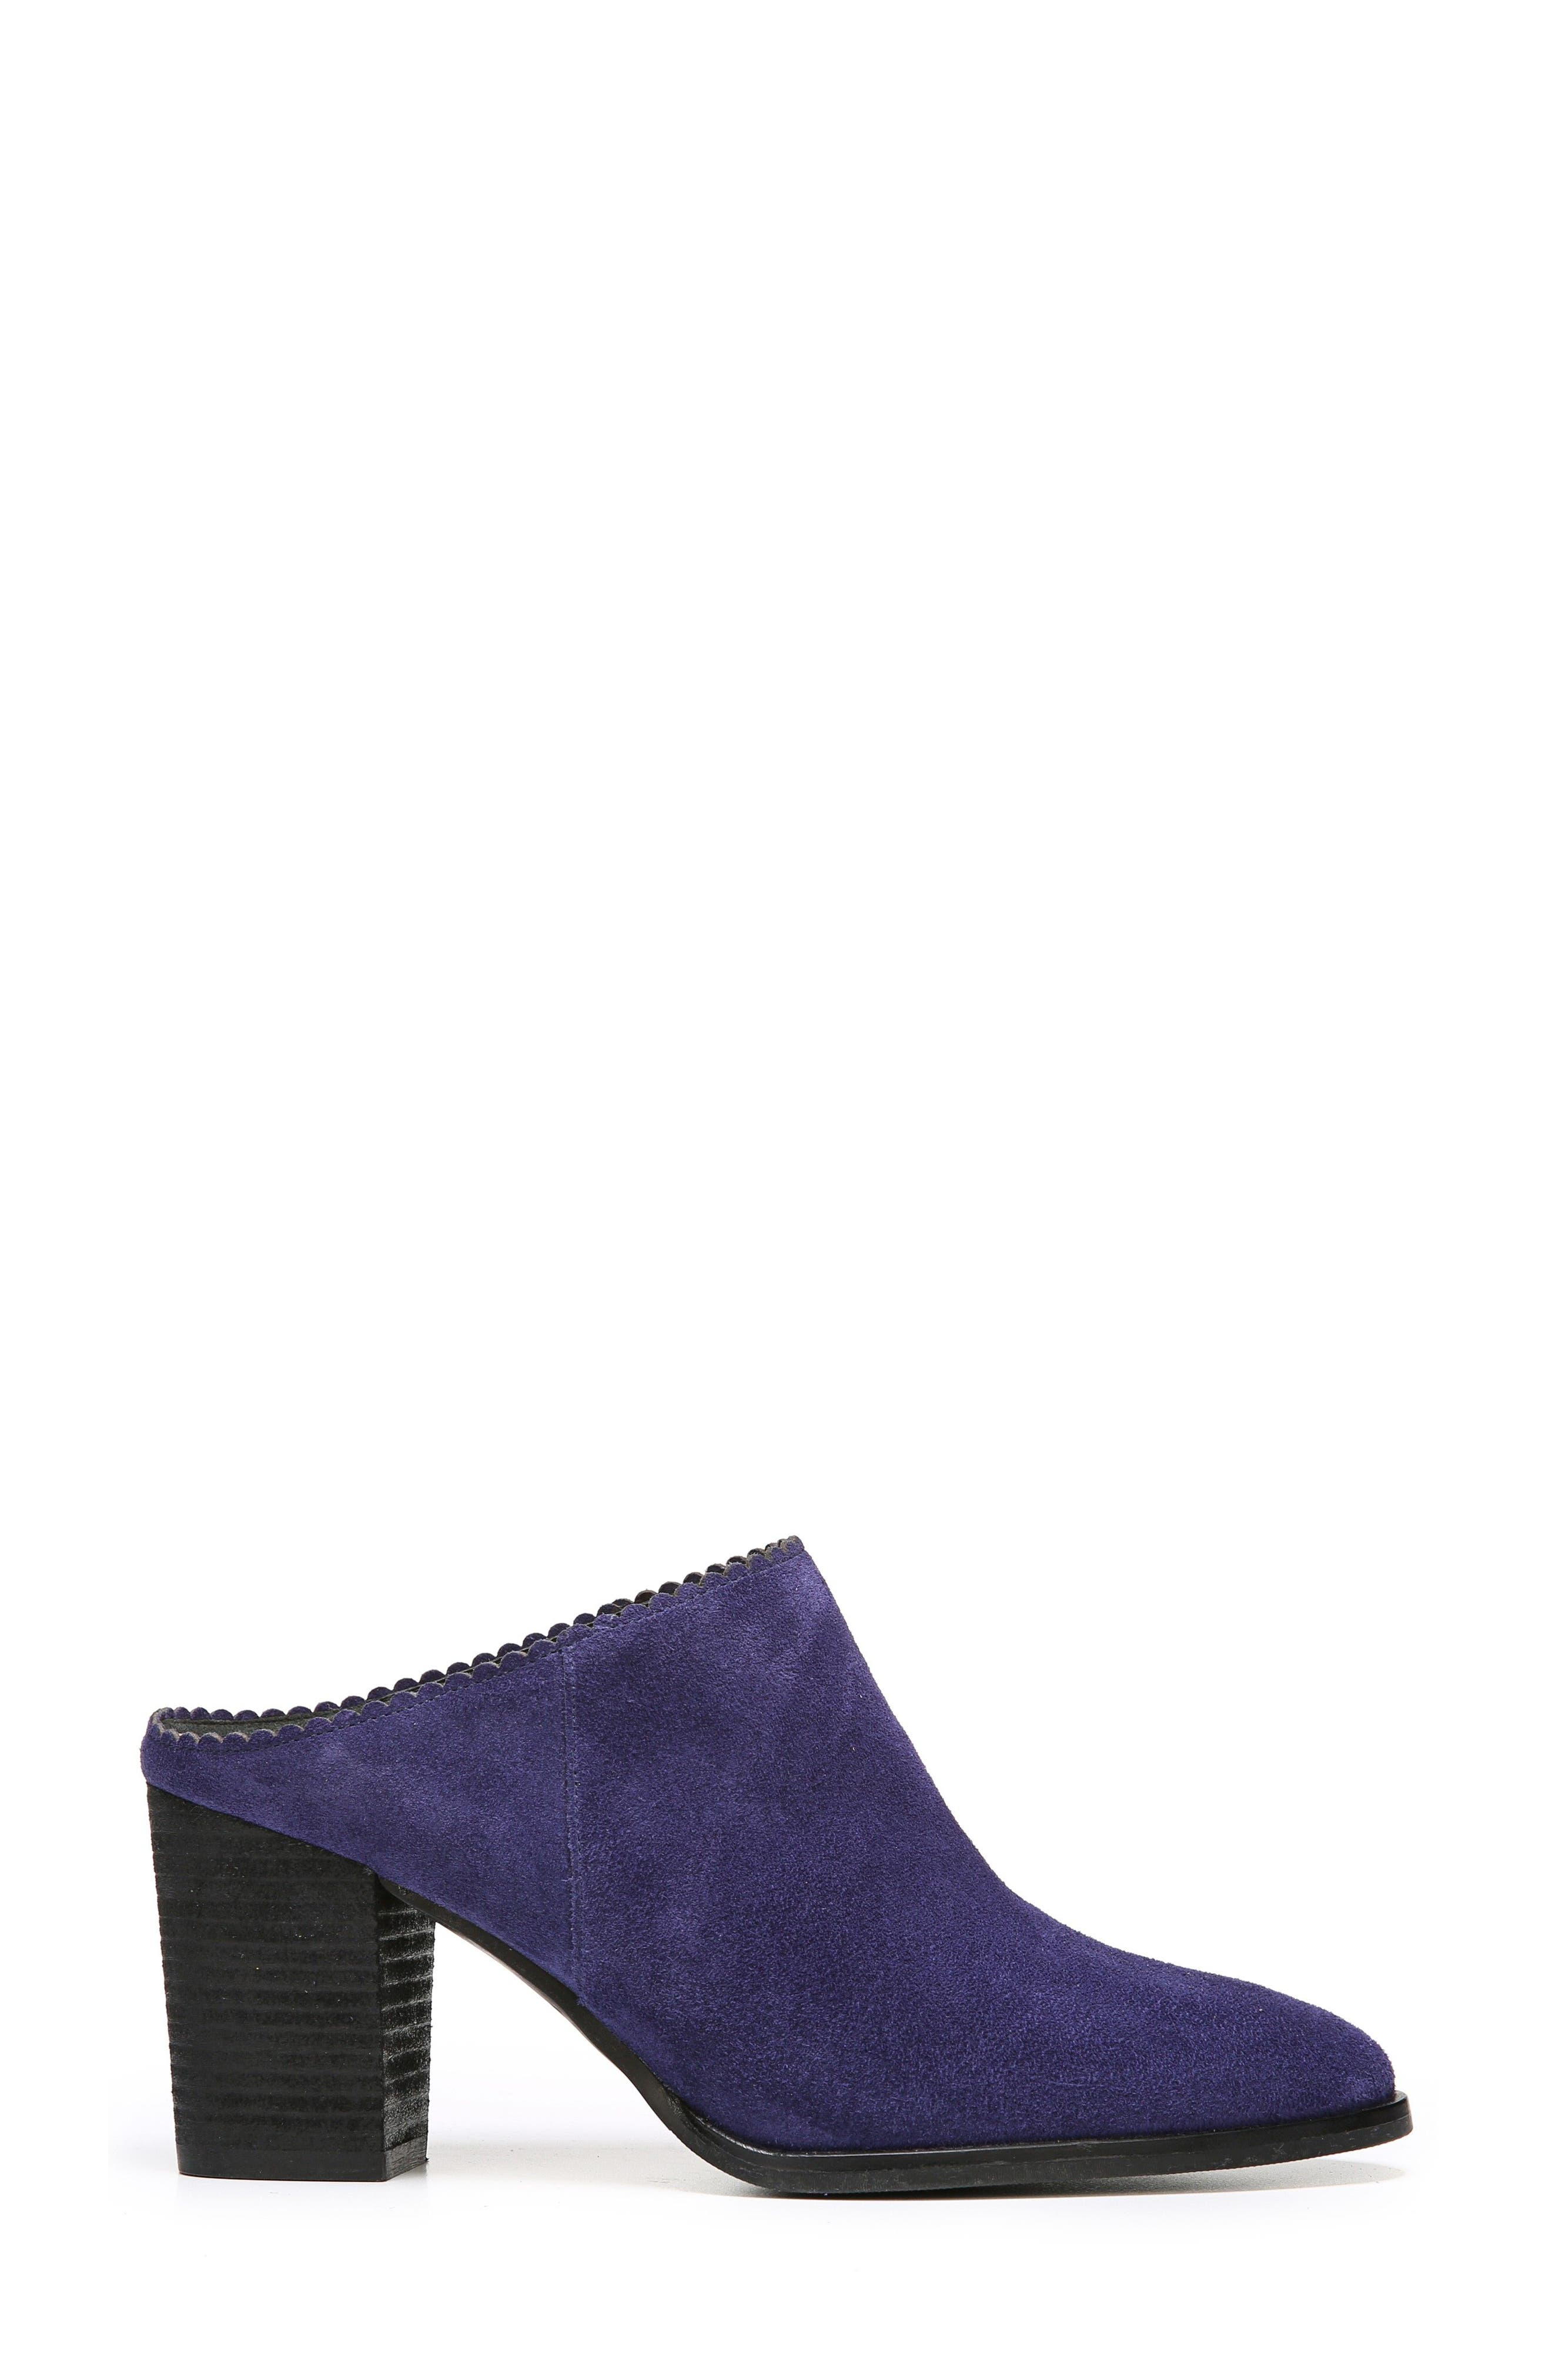 Alternate Image 3  - Via Spiga Sophia Block Heel Mule (Women)